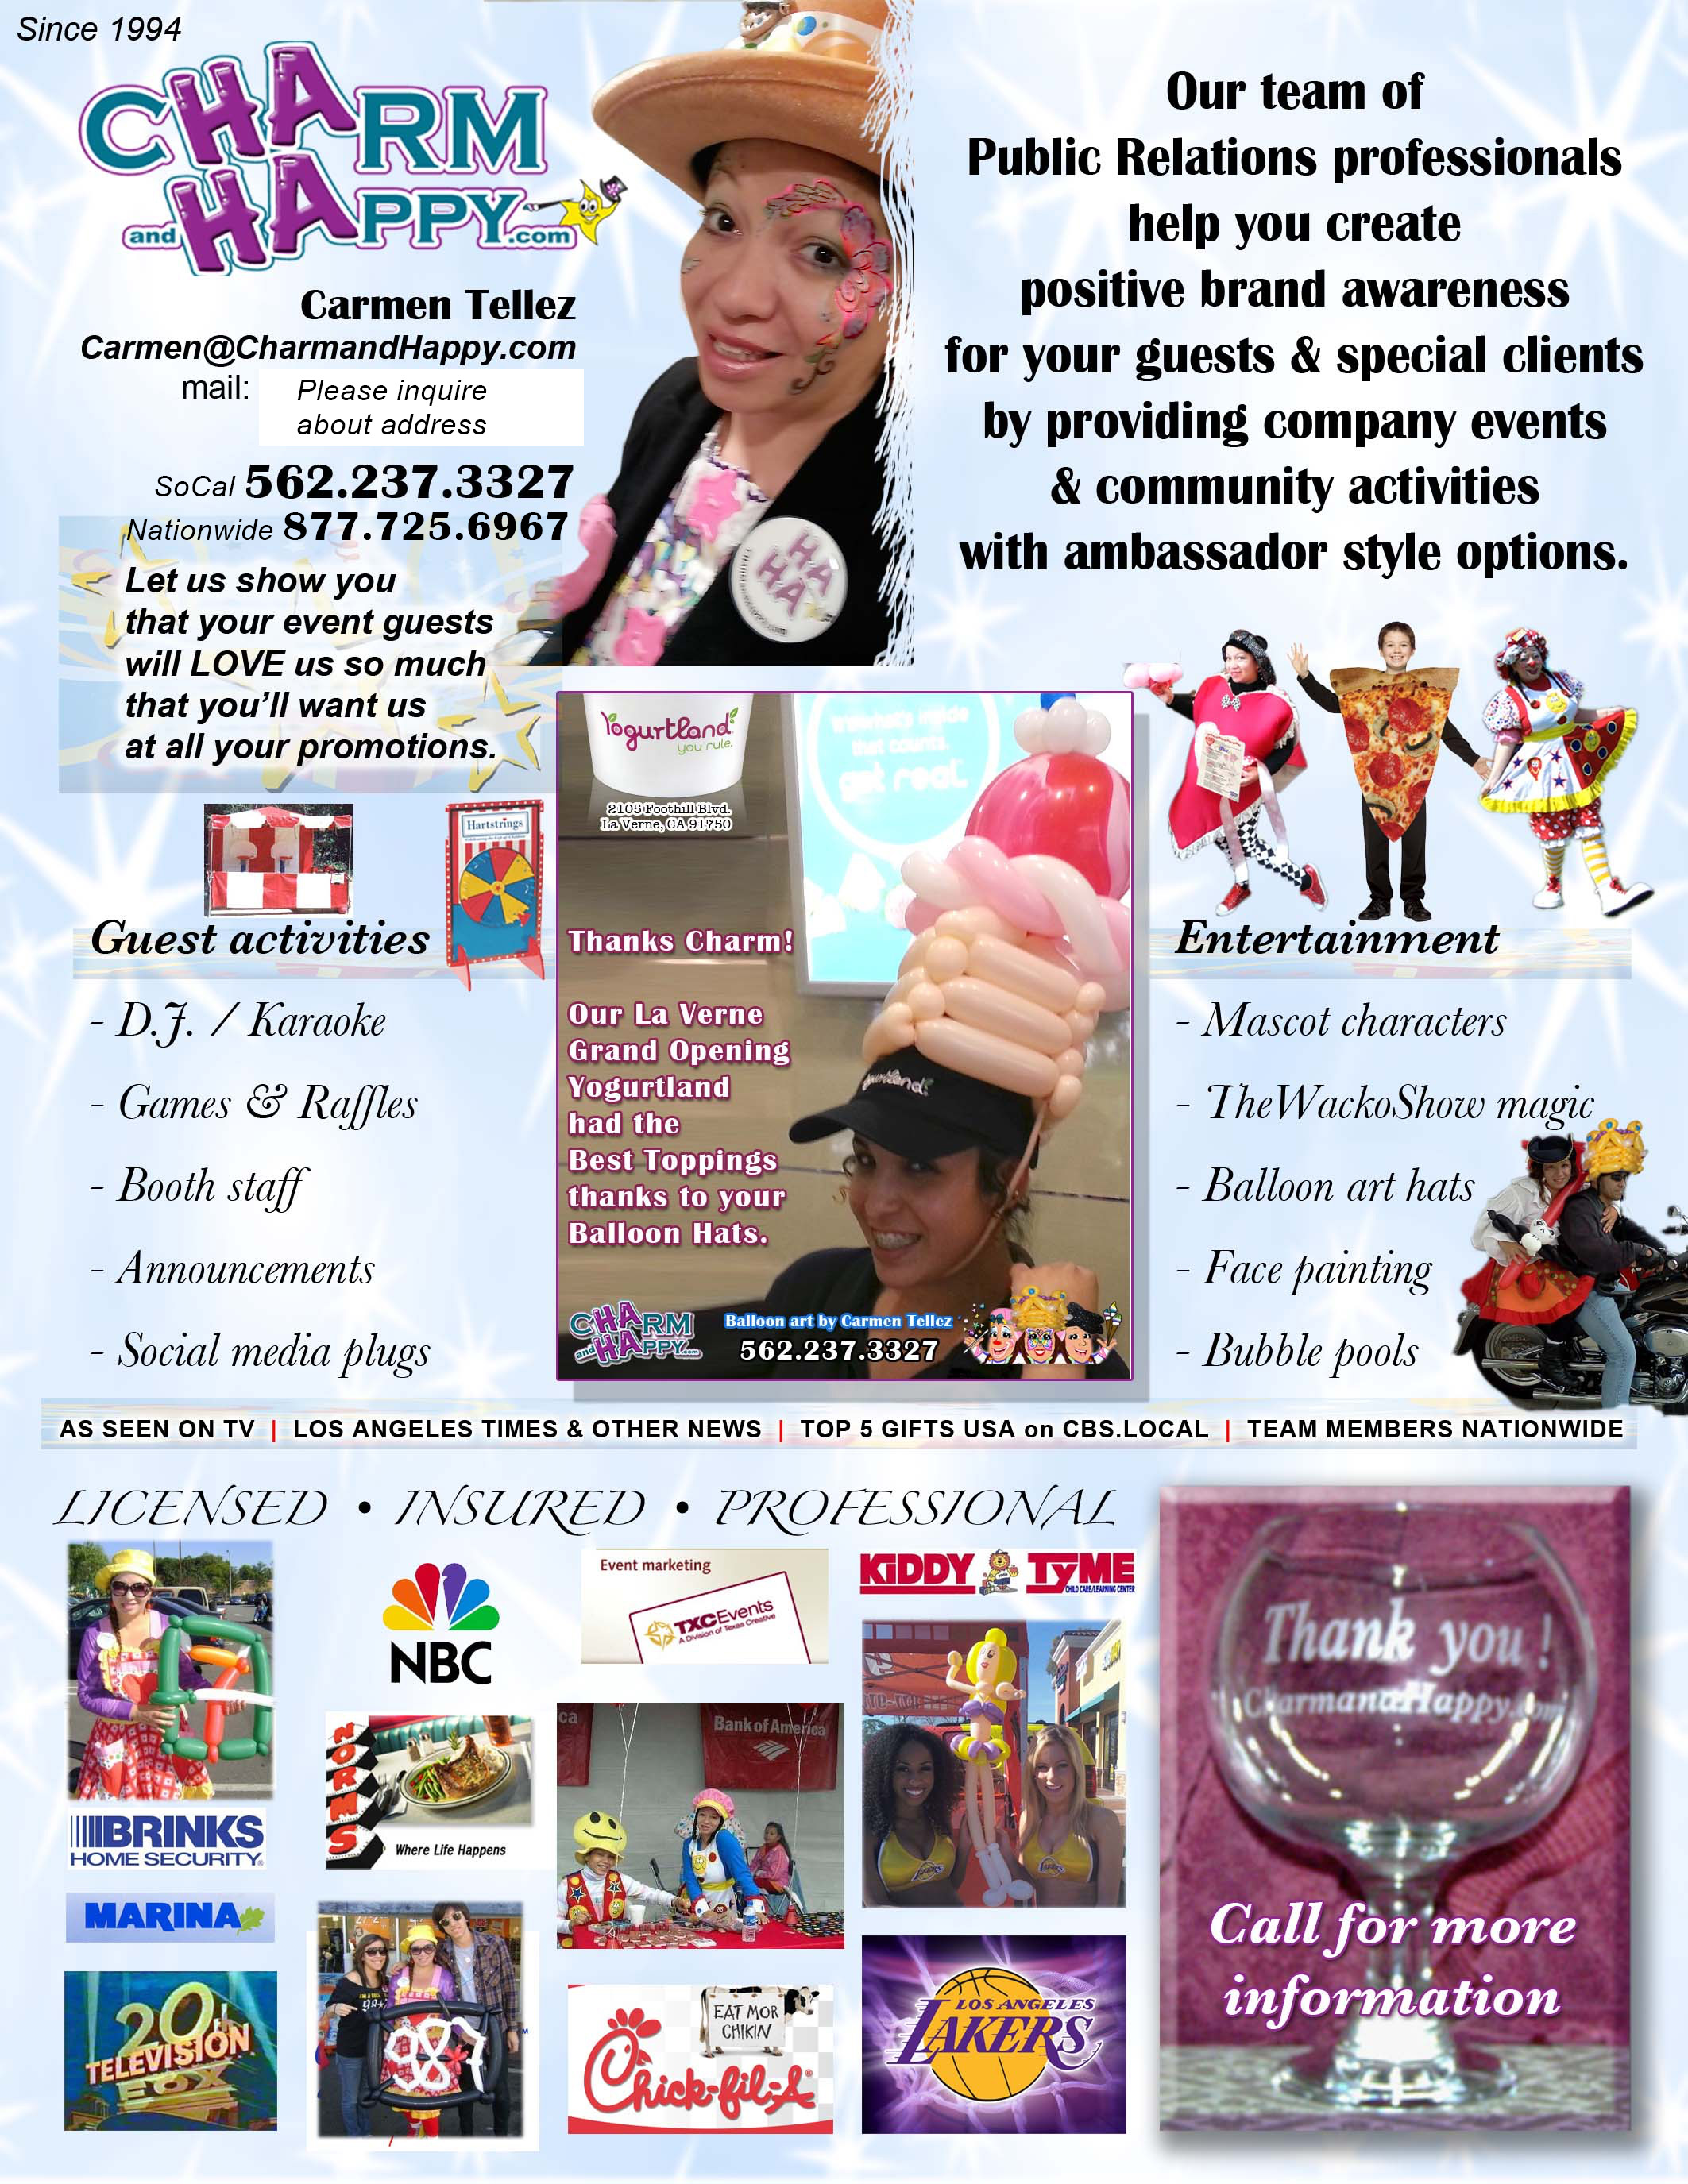 National Ice-cream month July event socials featuring CharmandHappy.com face painting balloon art entertainment Los Angeles Hollywood Temecula moreno valley San Jacinto San Bernardino